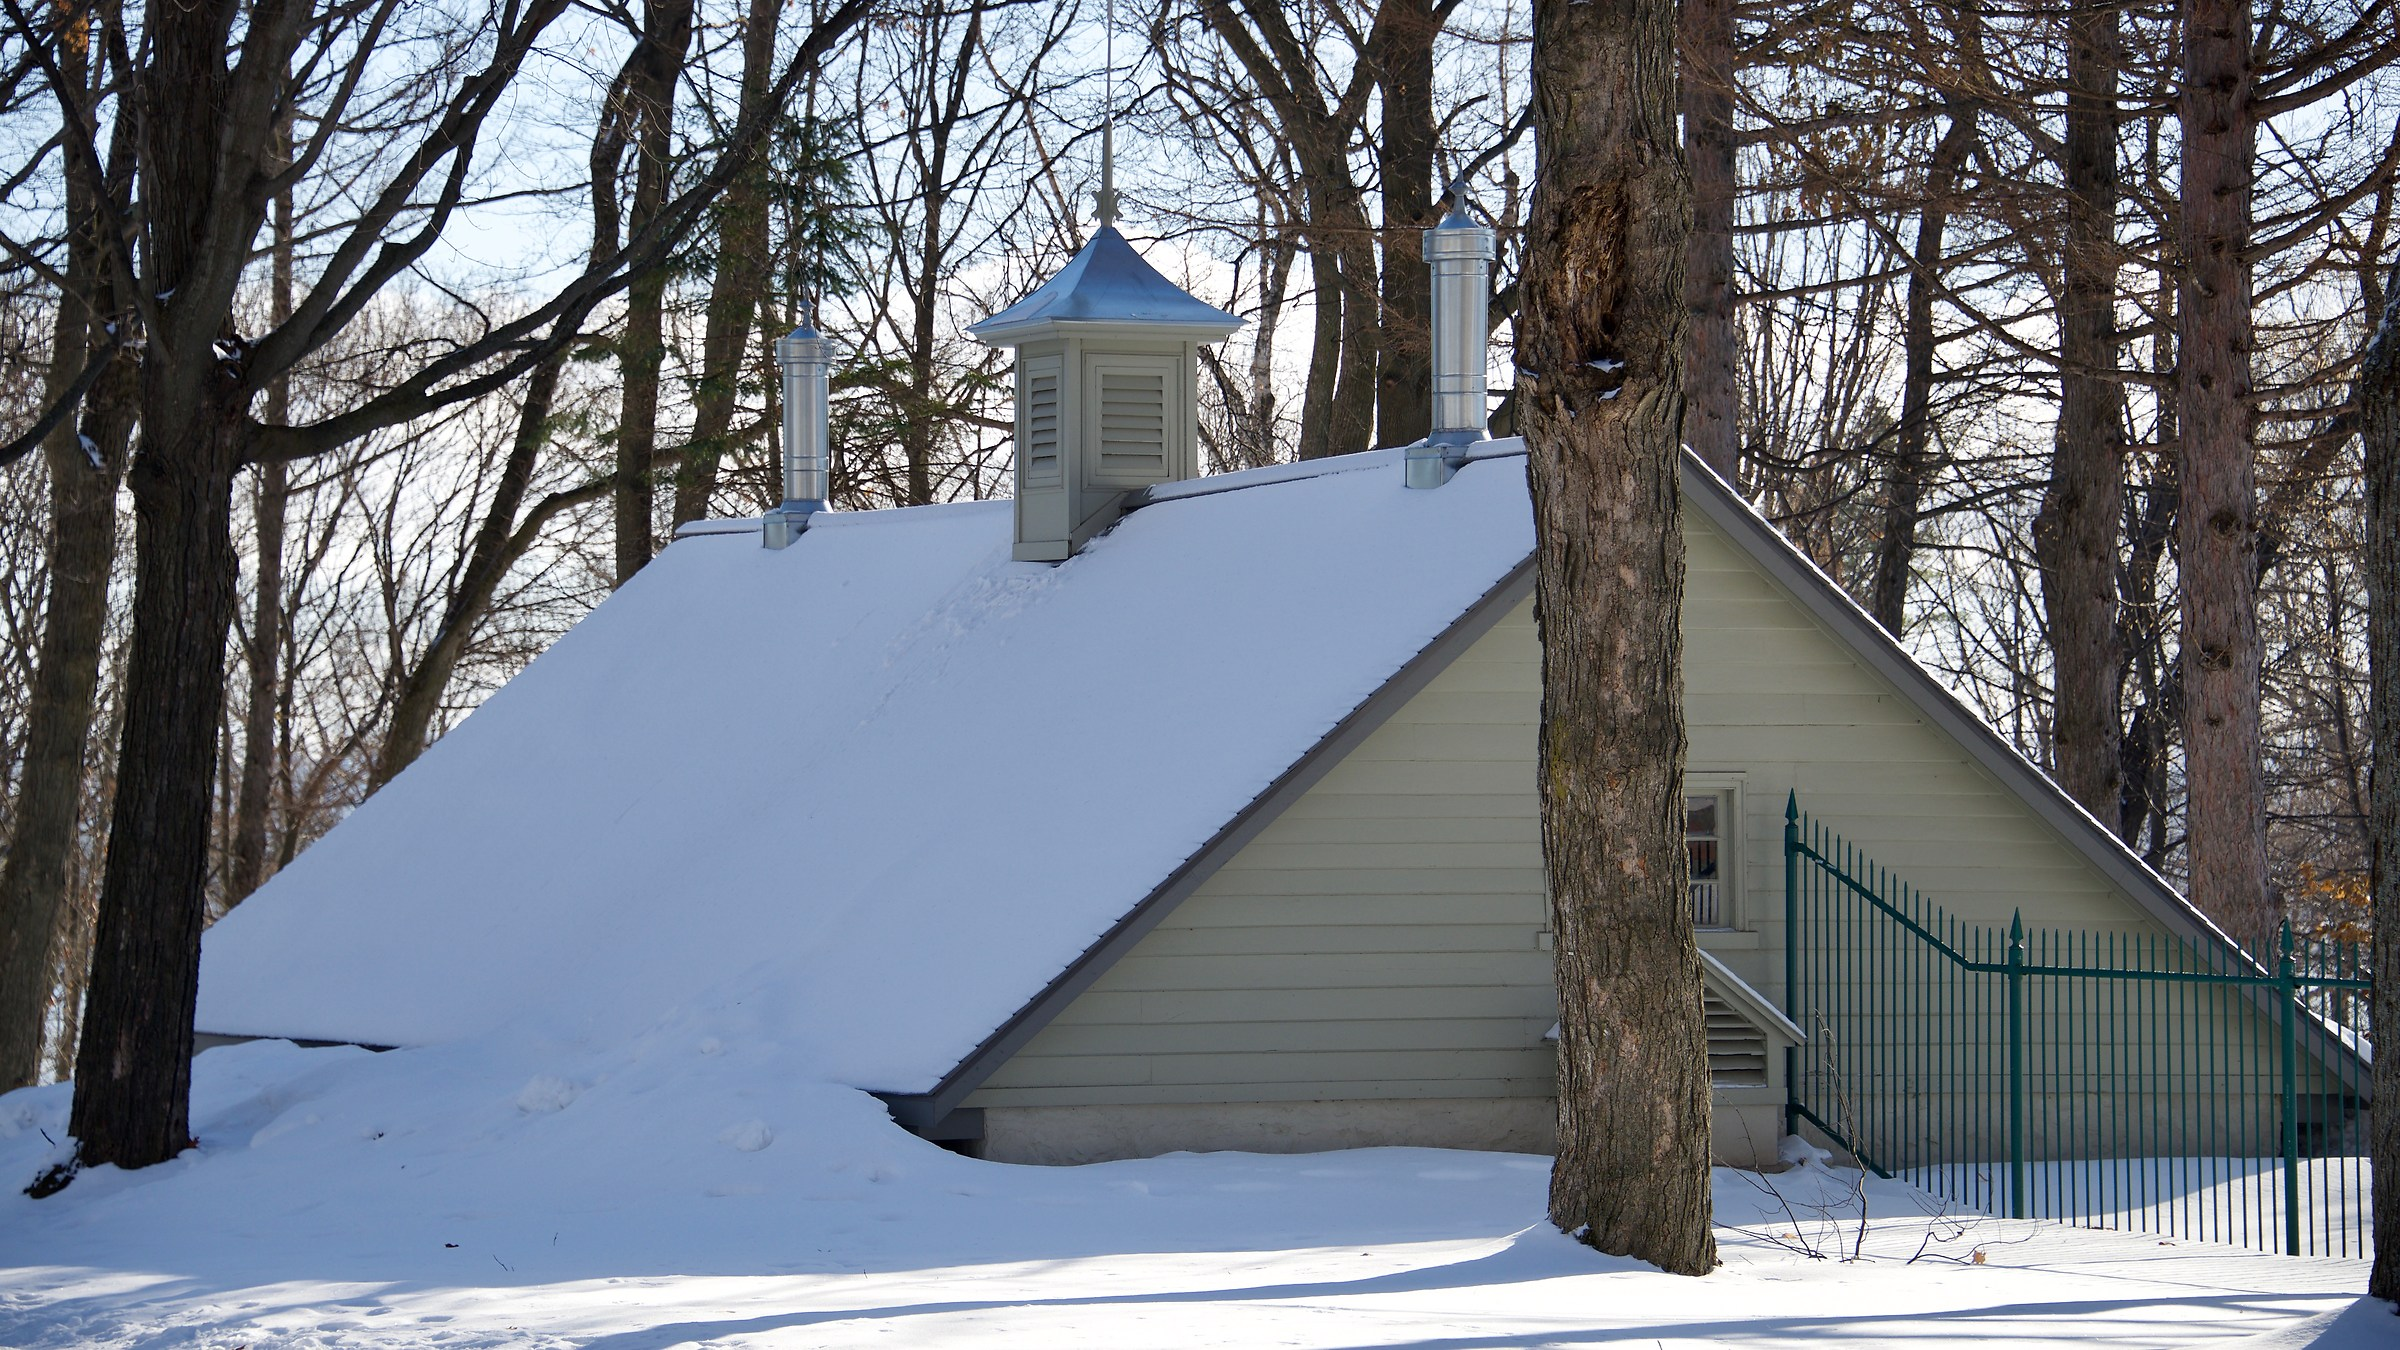 This house is gone due to snow accumulation......